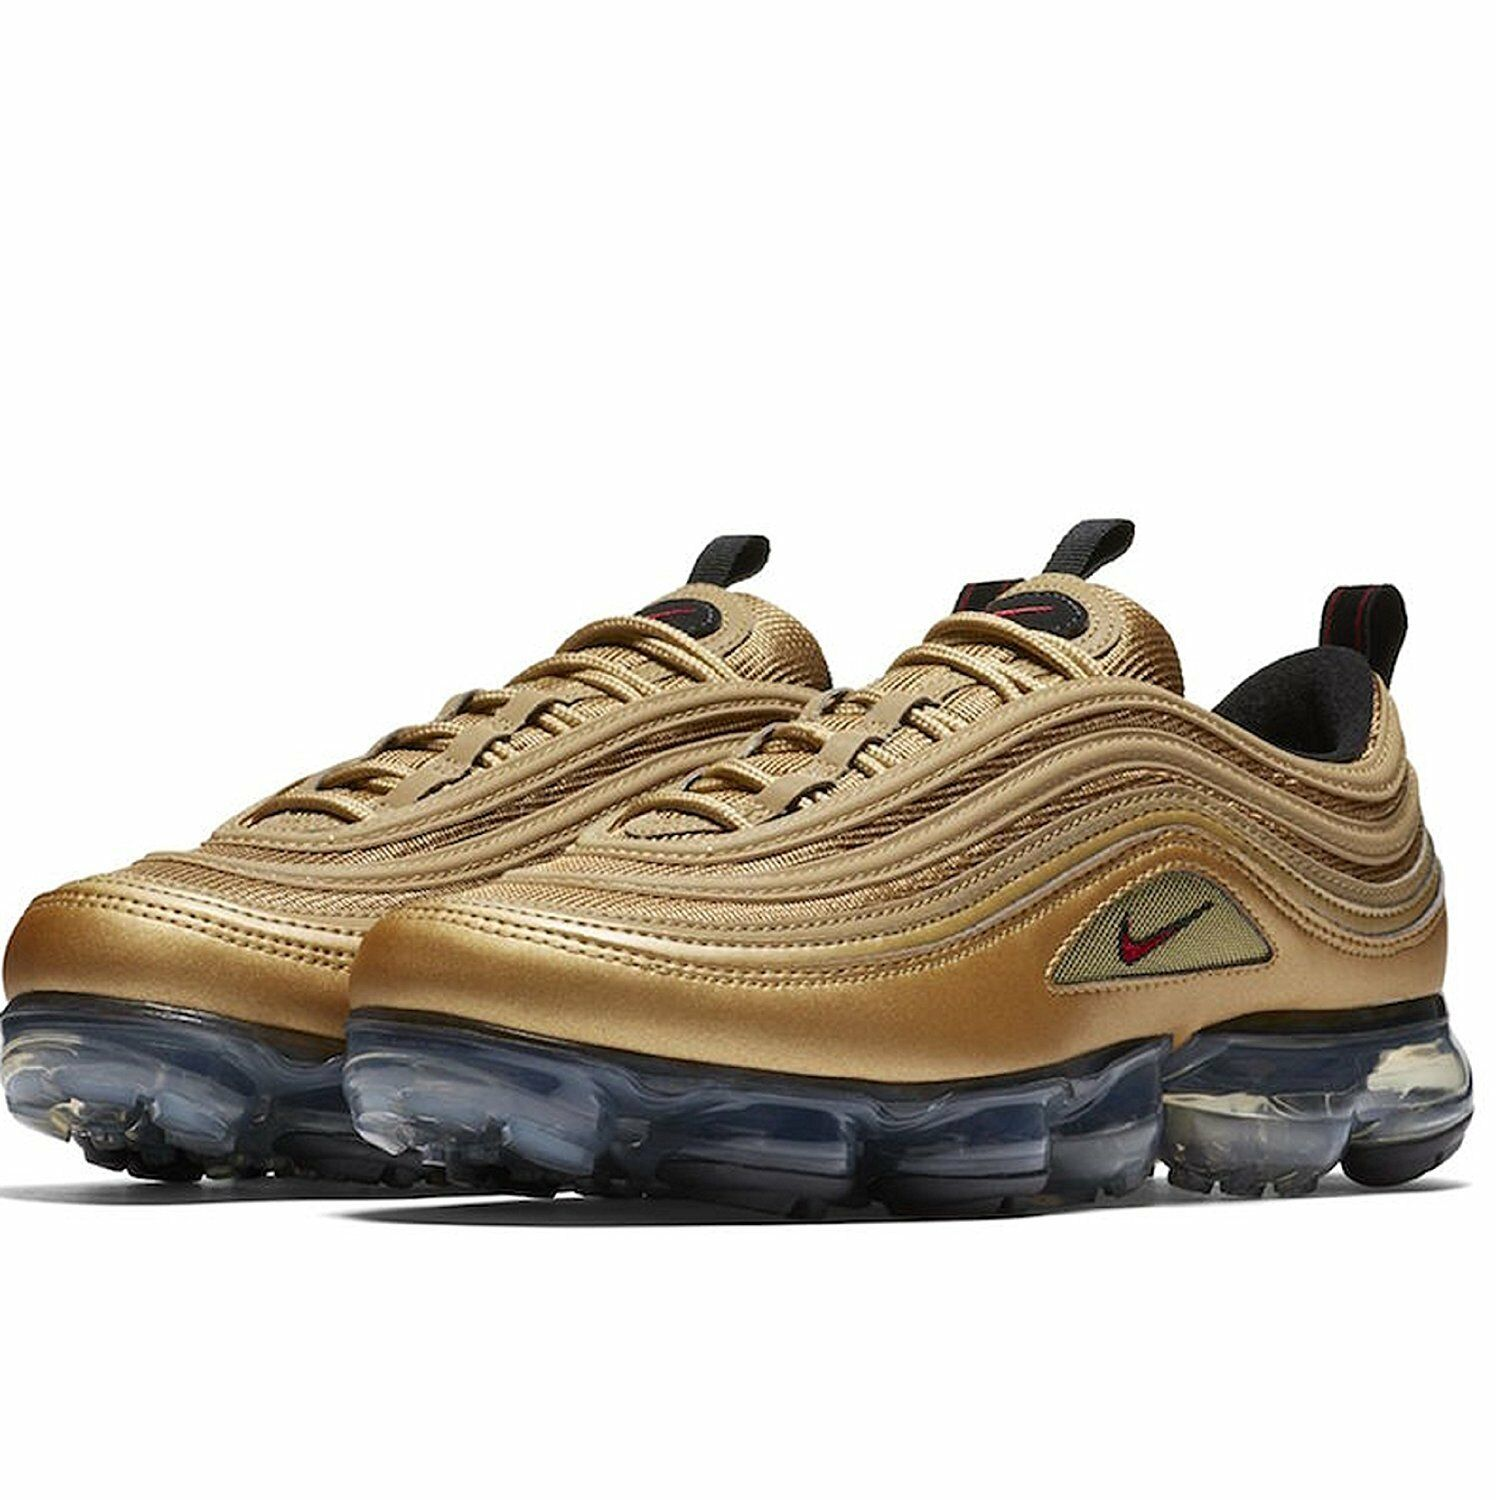 Nike Air Vapormax '97 Metallic Gold/Varsity Red Price reduction Seasonal clearance sale